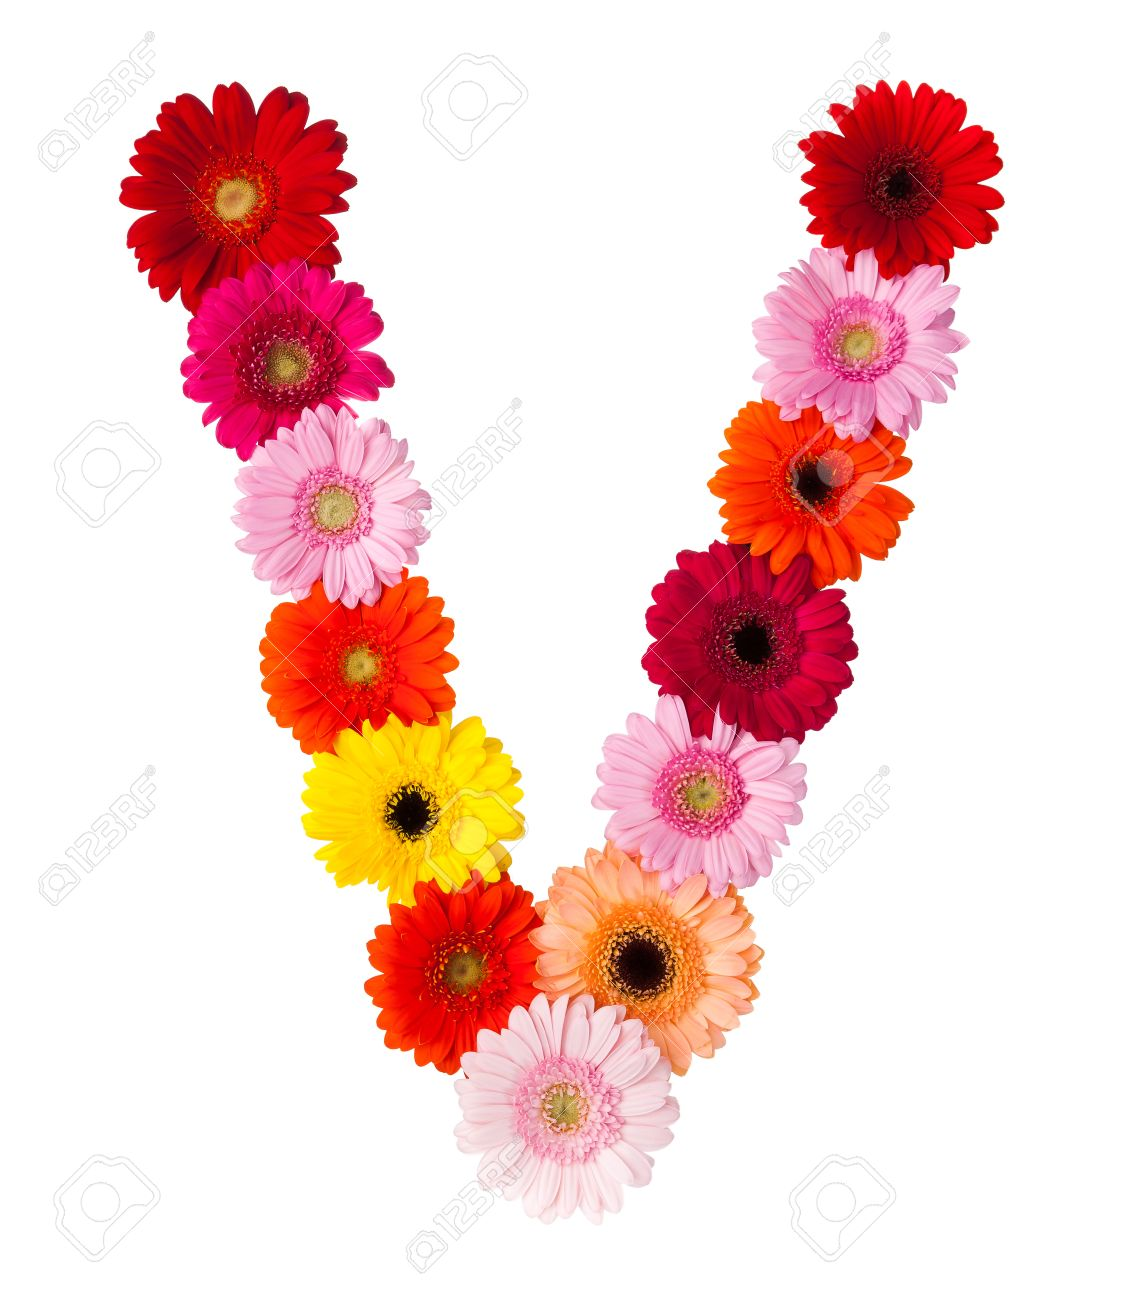 Flower letter v on white background made of gerbera flowers stock flower letter v on white background made of gerbera flowers stock photo 28600964 altavistaventures Choice Image